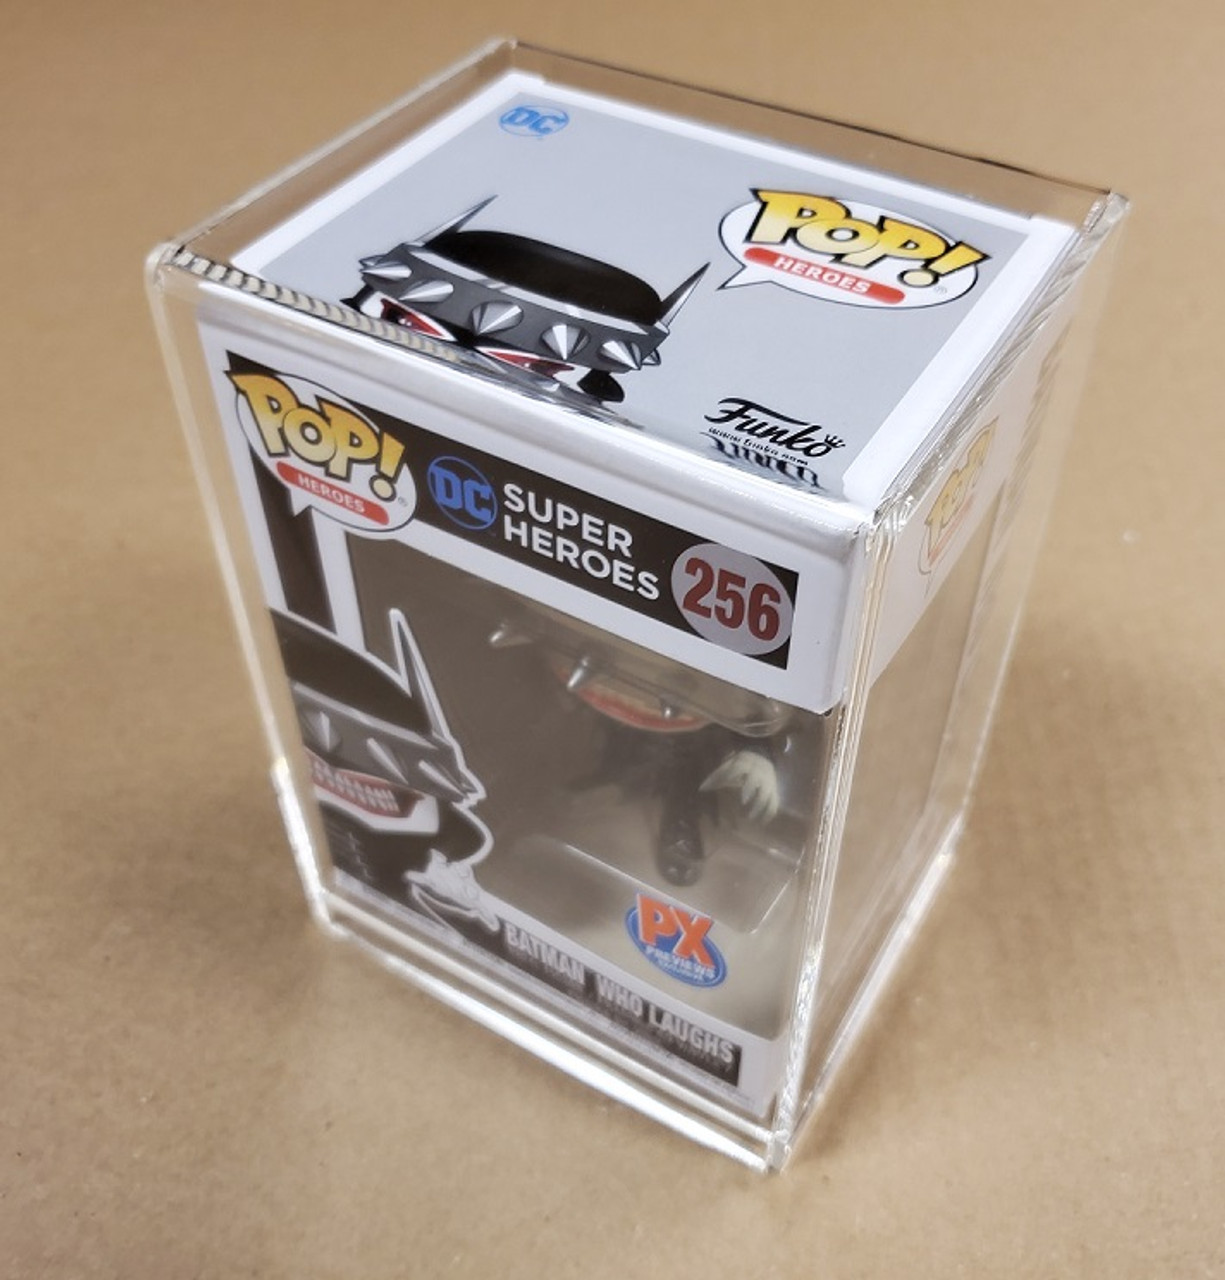 High Quality Acrylic Display For your Vinyl POP Figures